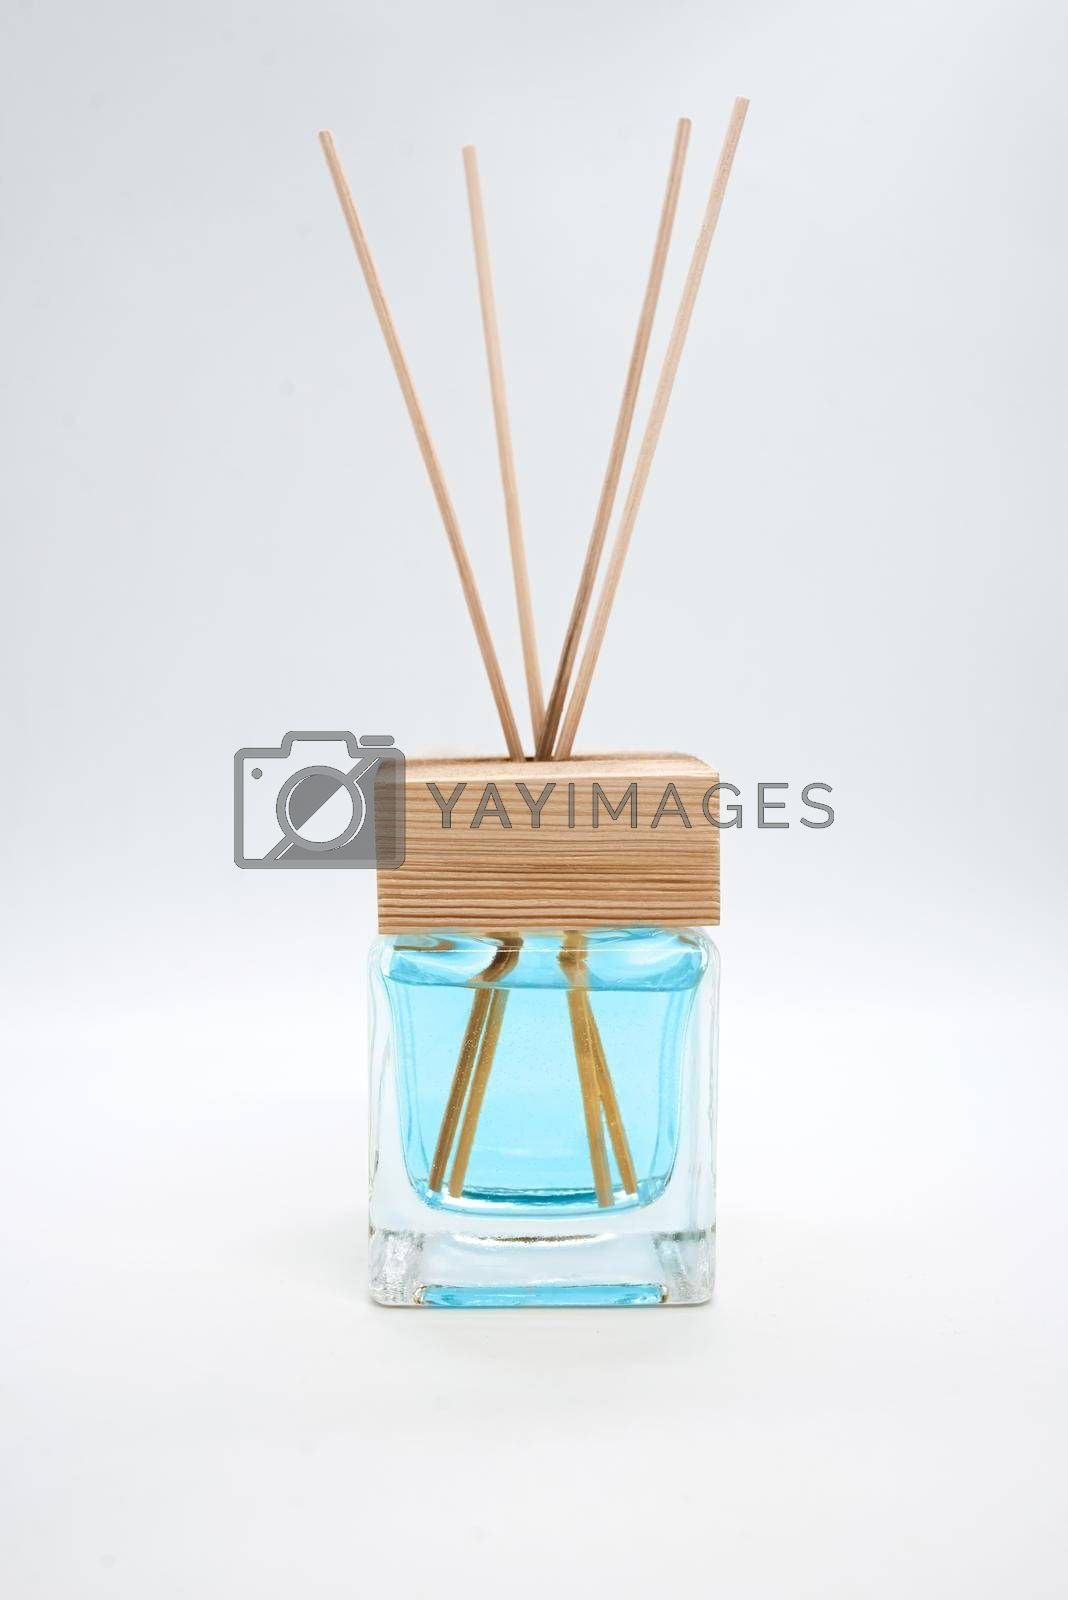 A Bottle of Lavender Fragrant Oil Diffuser with Reed Sticks, isolated on white by Nickstock